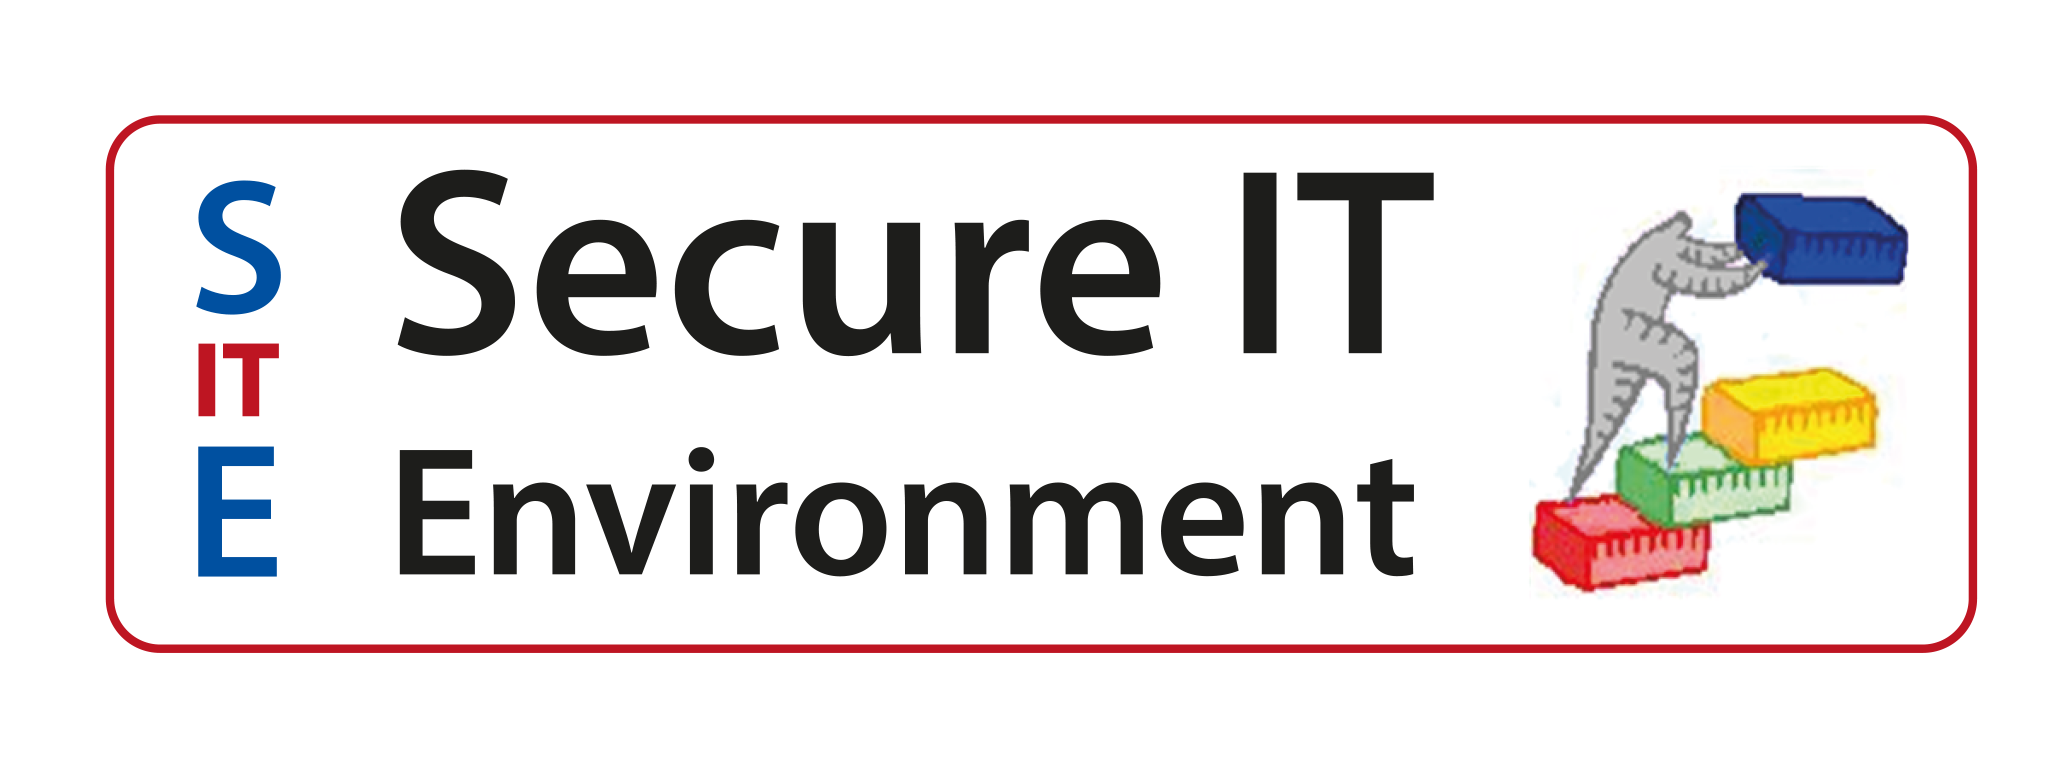 Secure IT Environment AS